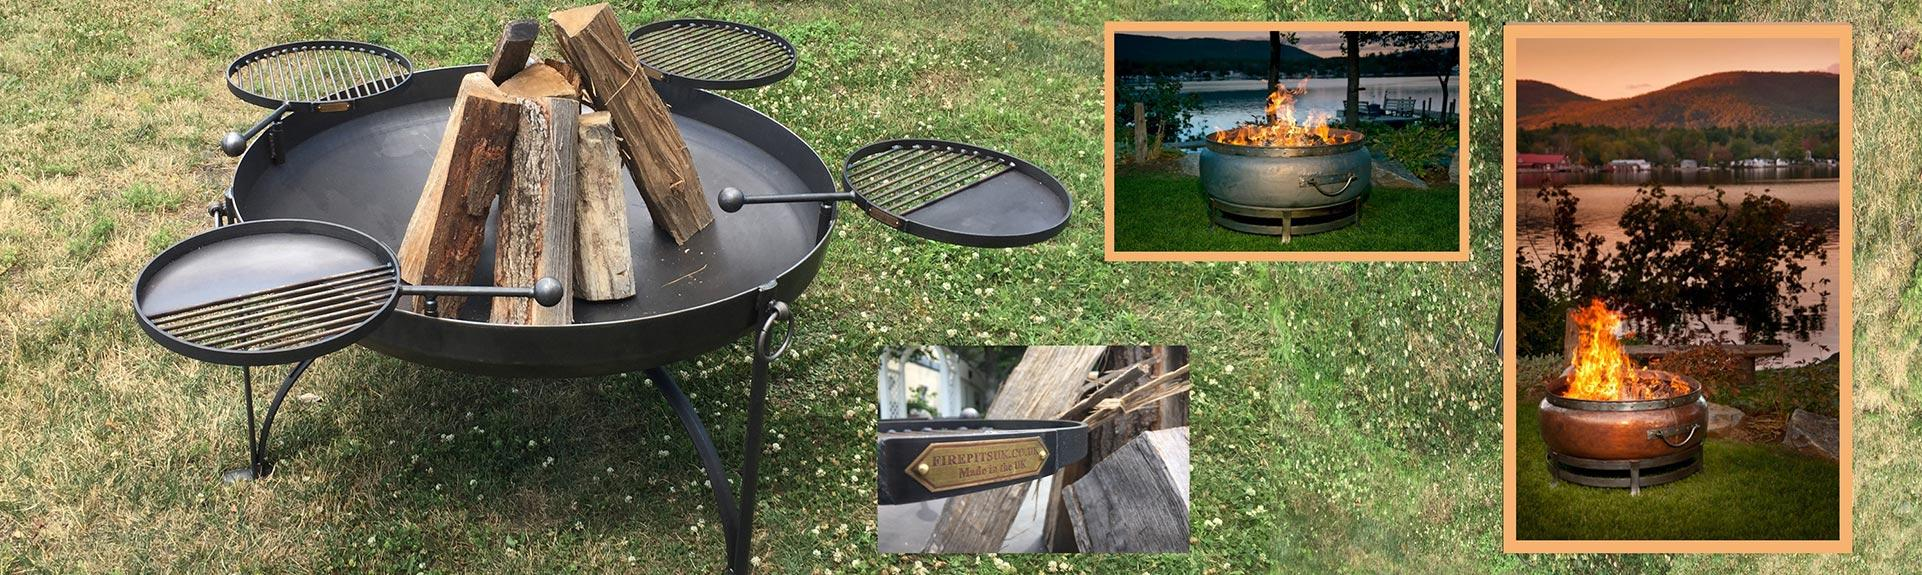 fire pit cooking Monmouth County nj Wood Stove Fireplace Center